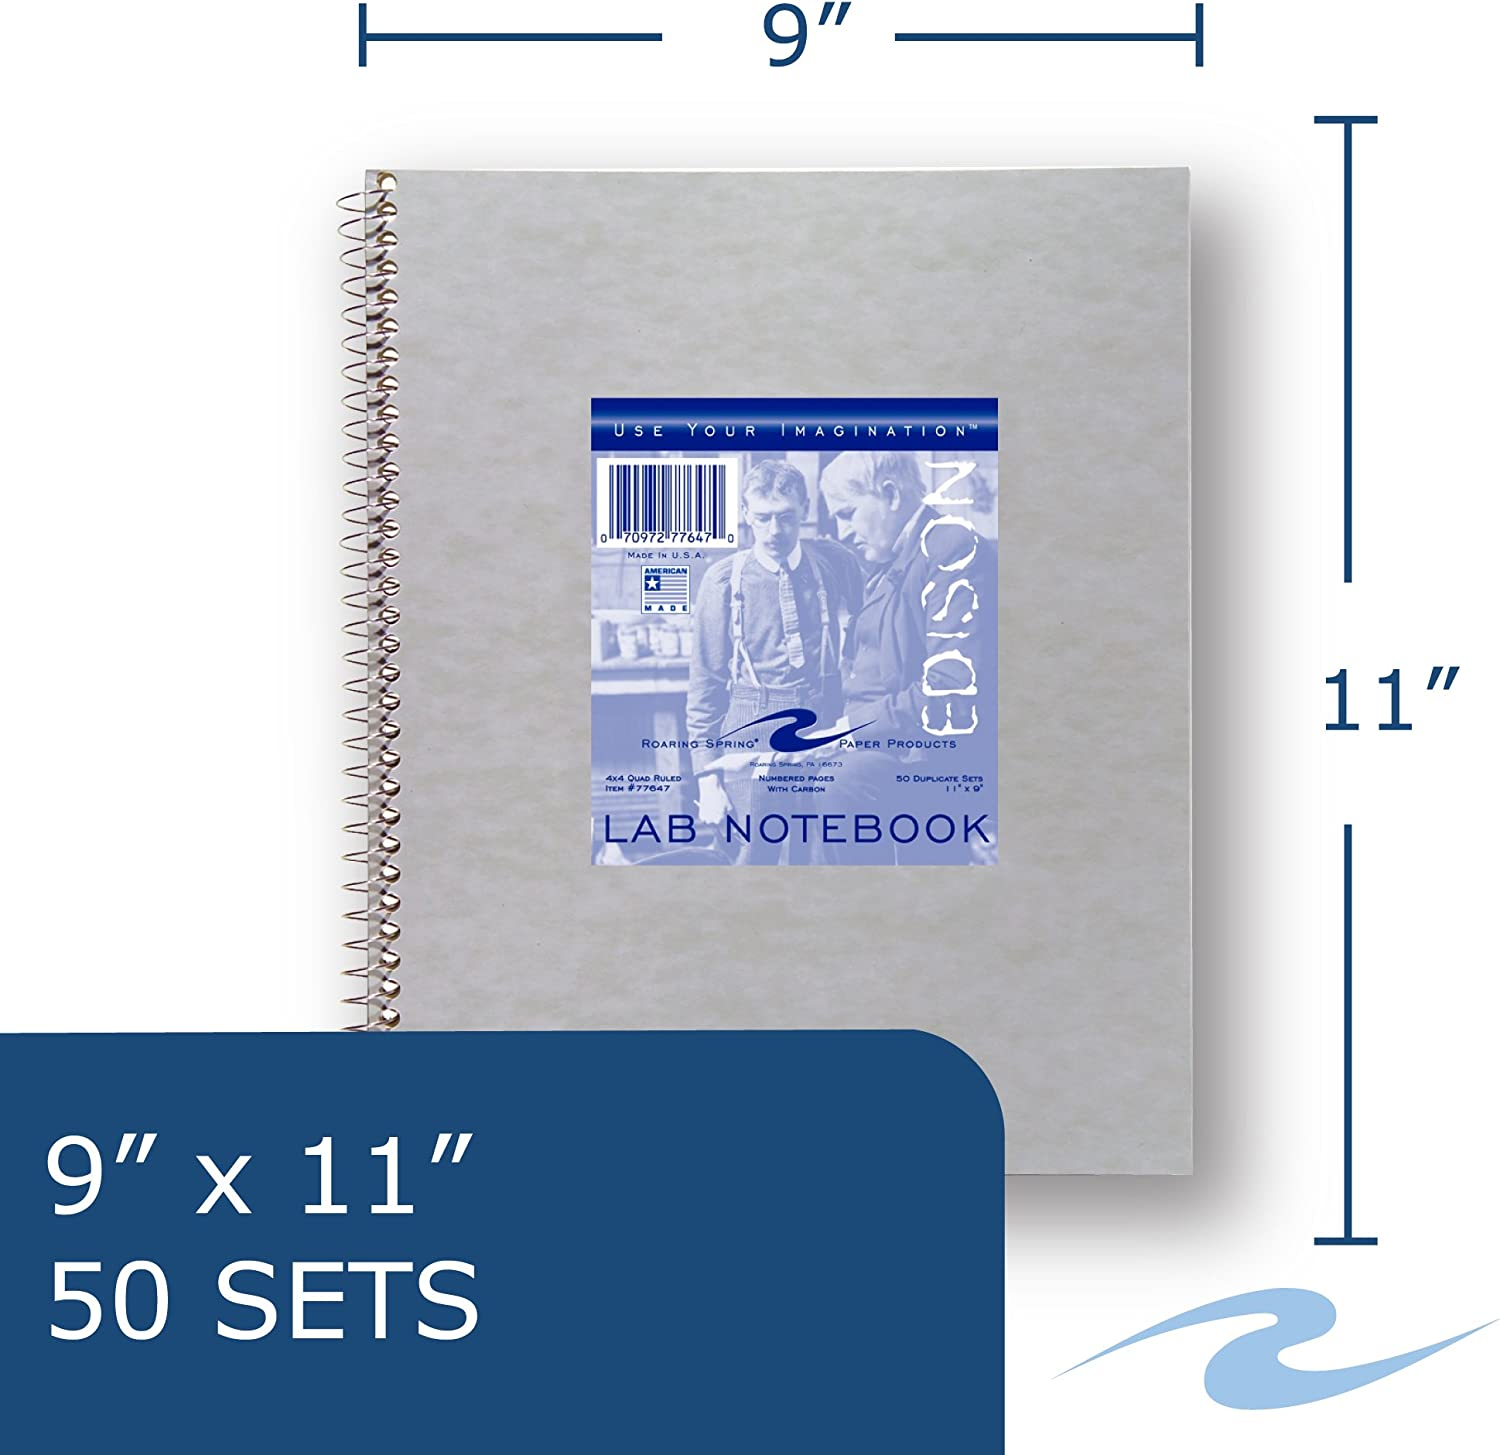 Roaring Spring Lab Notebook 50 sets w//Carbon 11 x 9